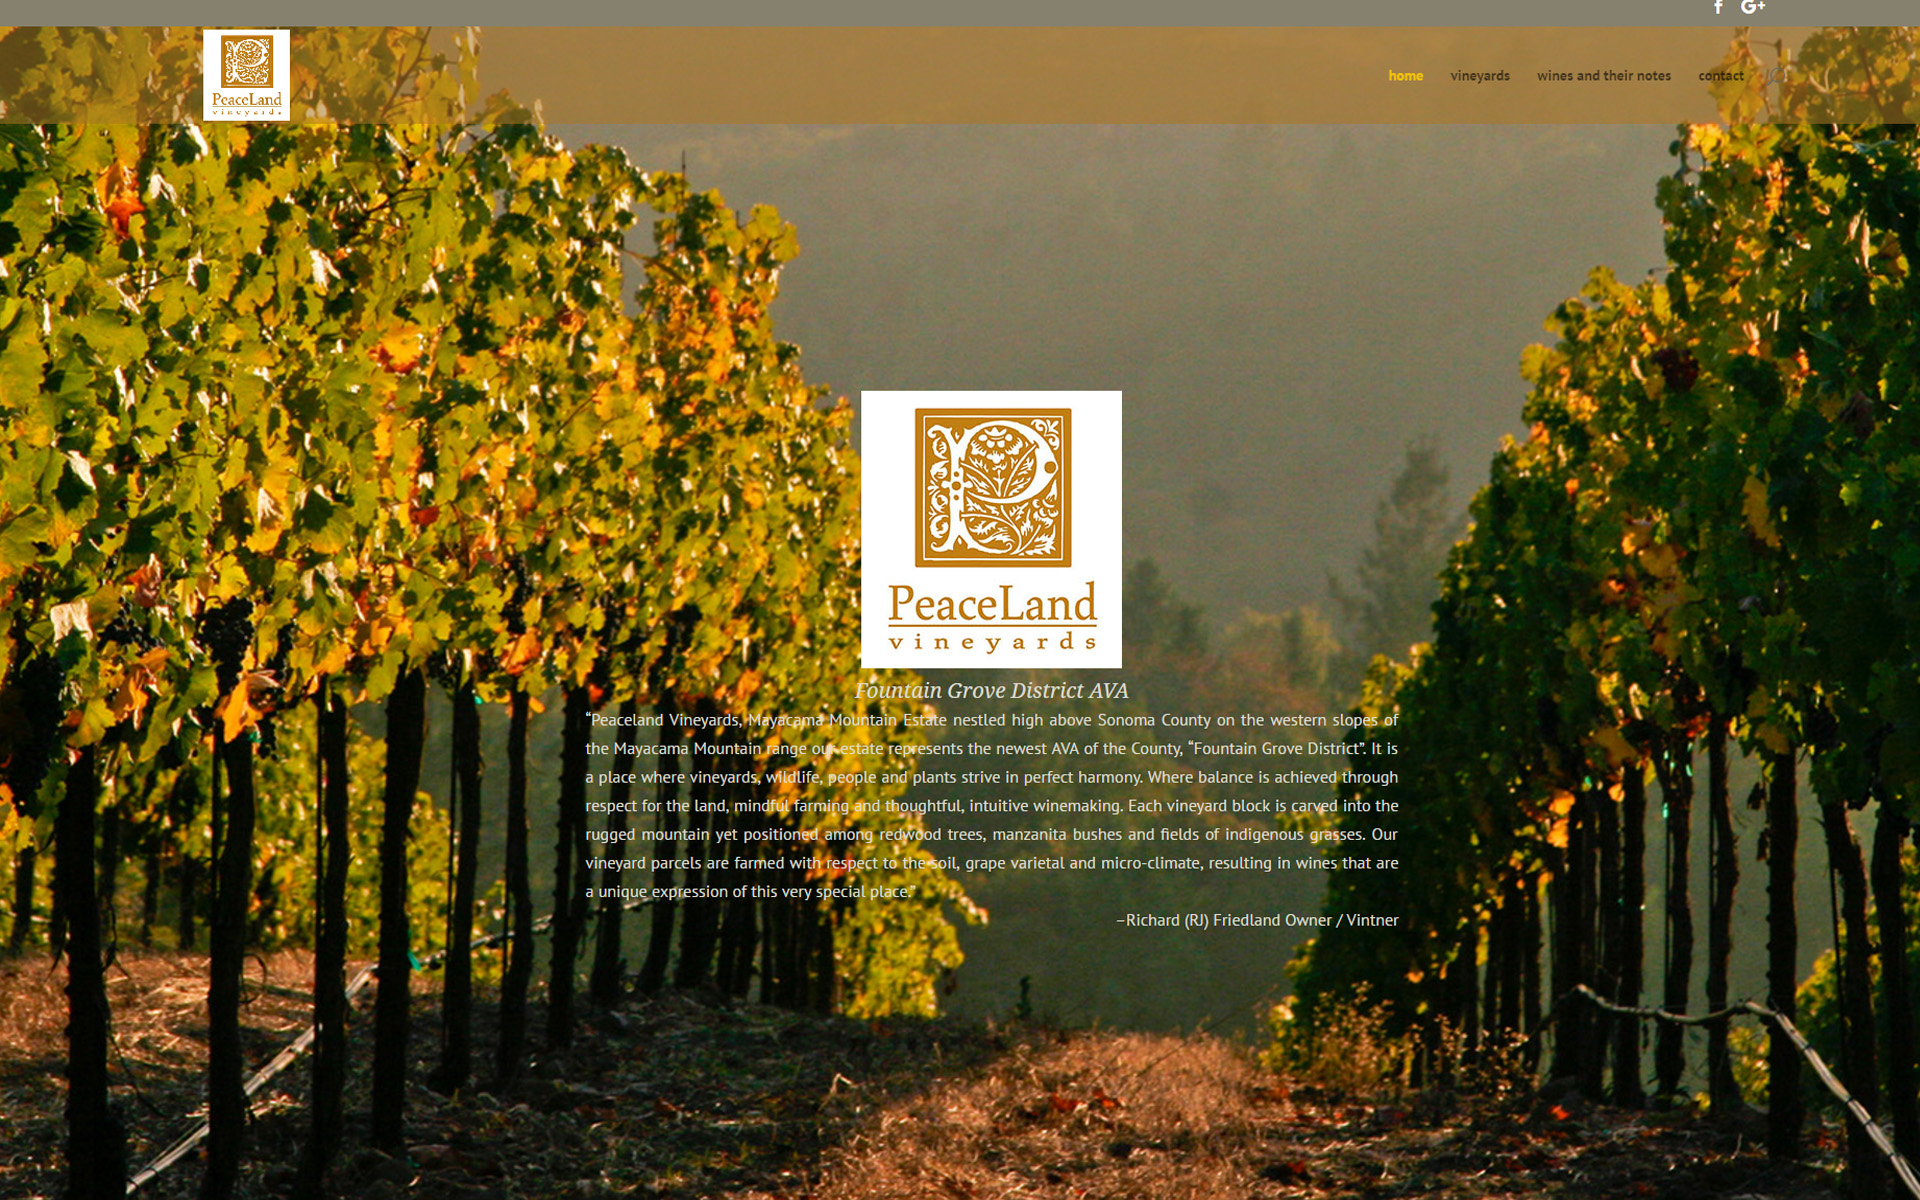 http://peacelandvineyards.com/